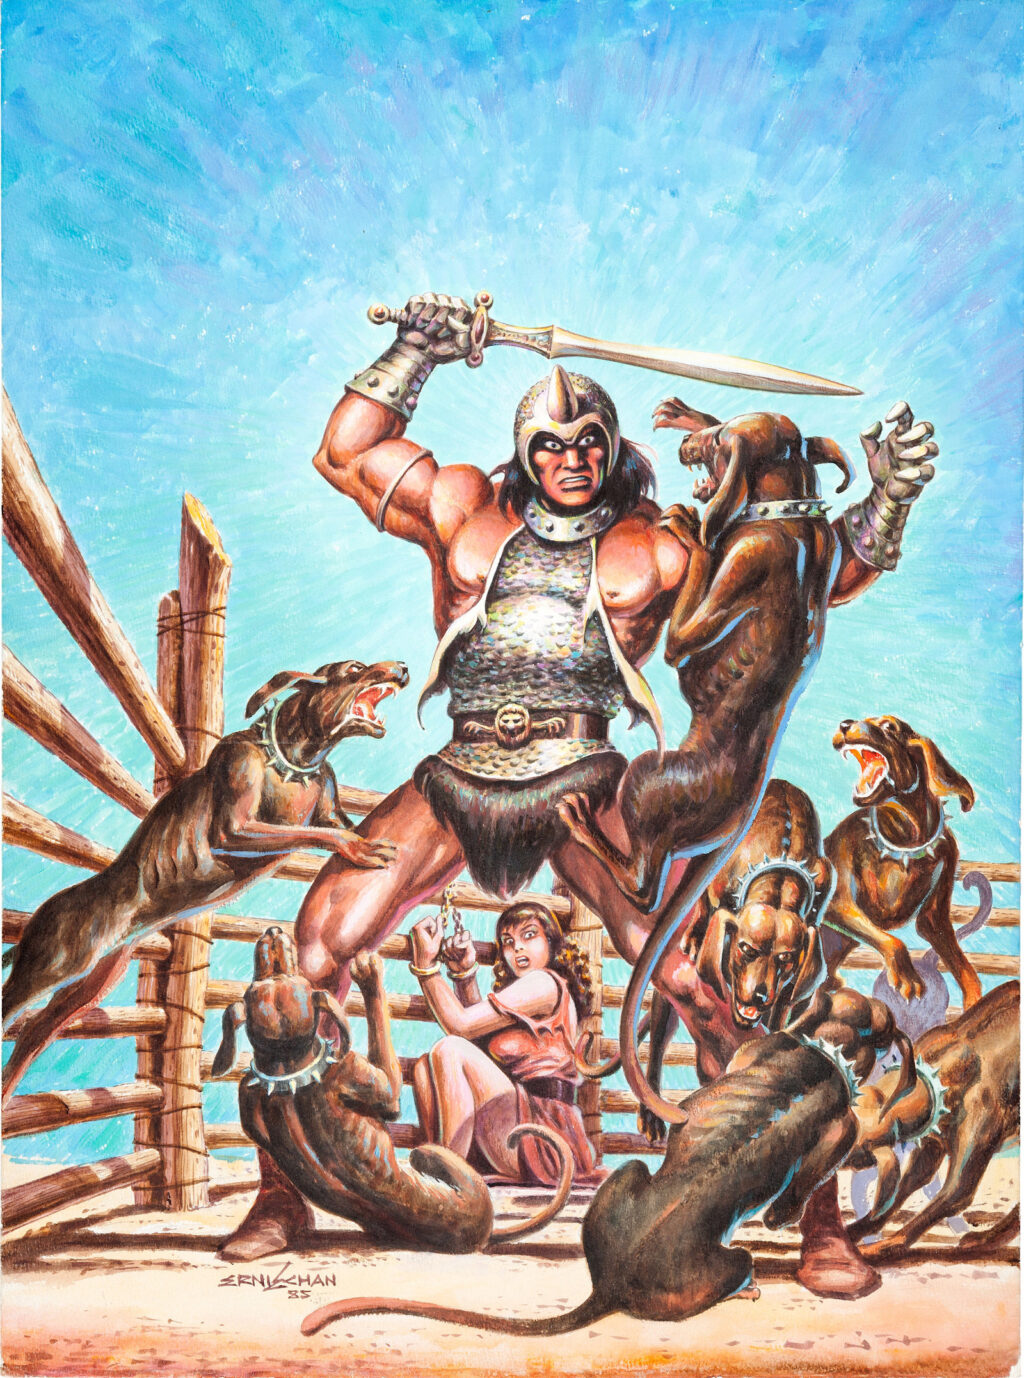 The Savage Sword of Conan issue 119 cover by Ernie Chan